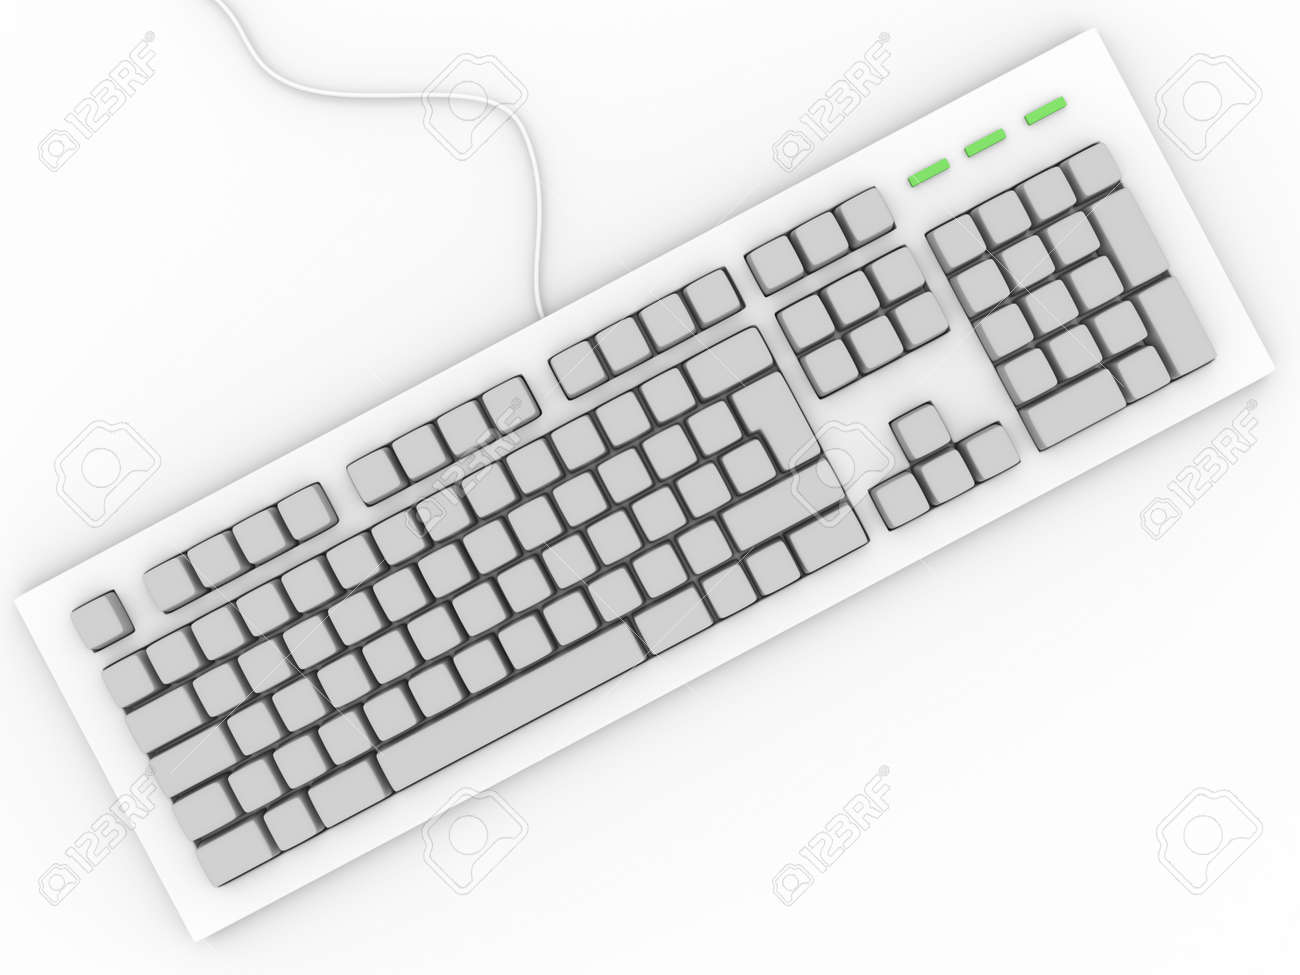 personal computer keyboard without letters input device stock photo 12700748